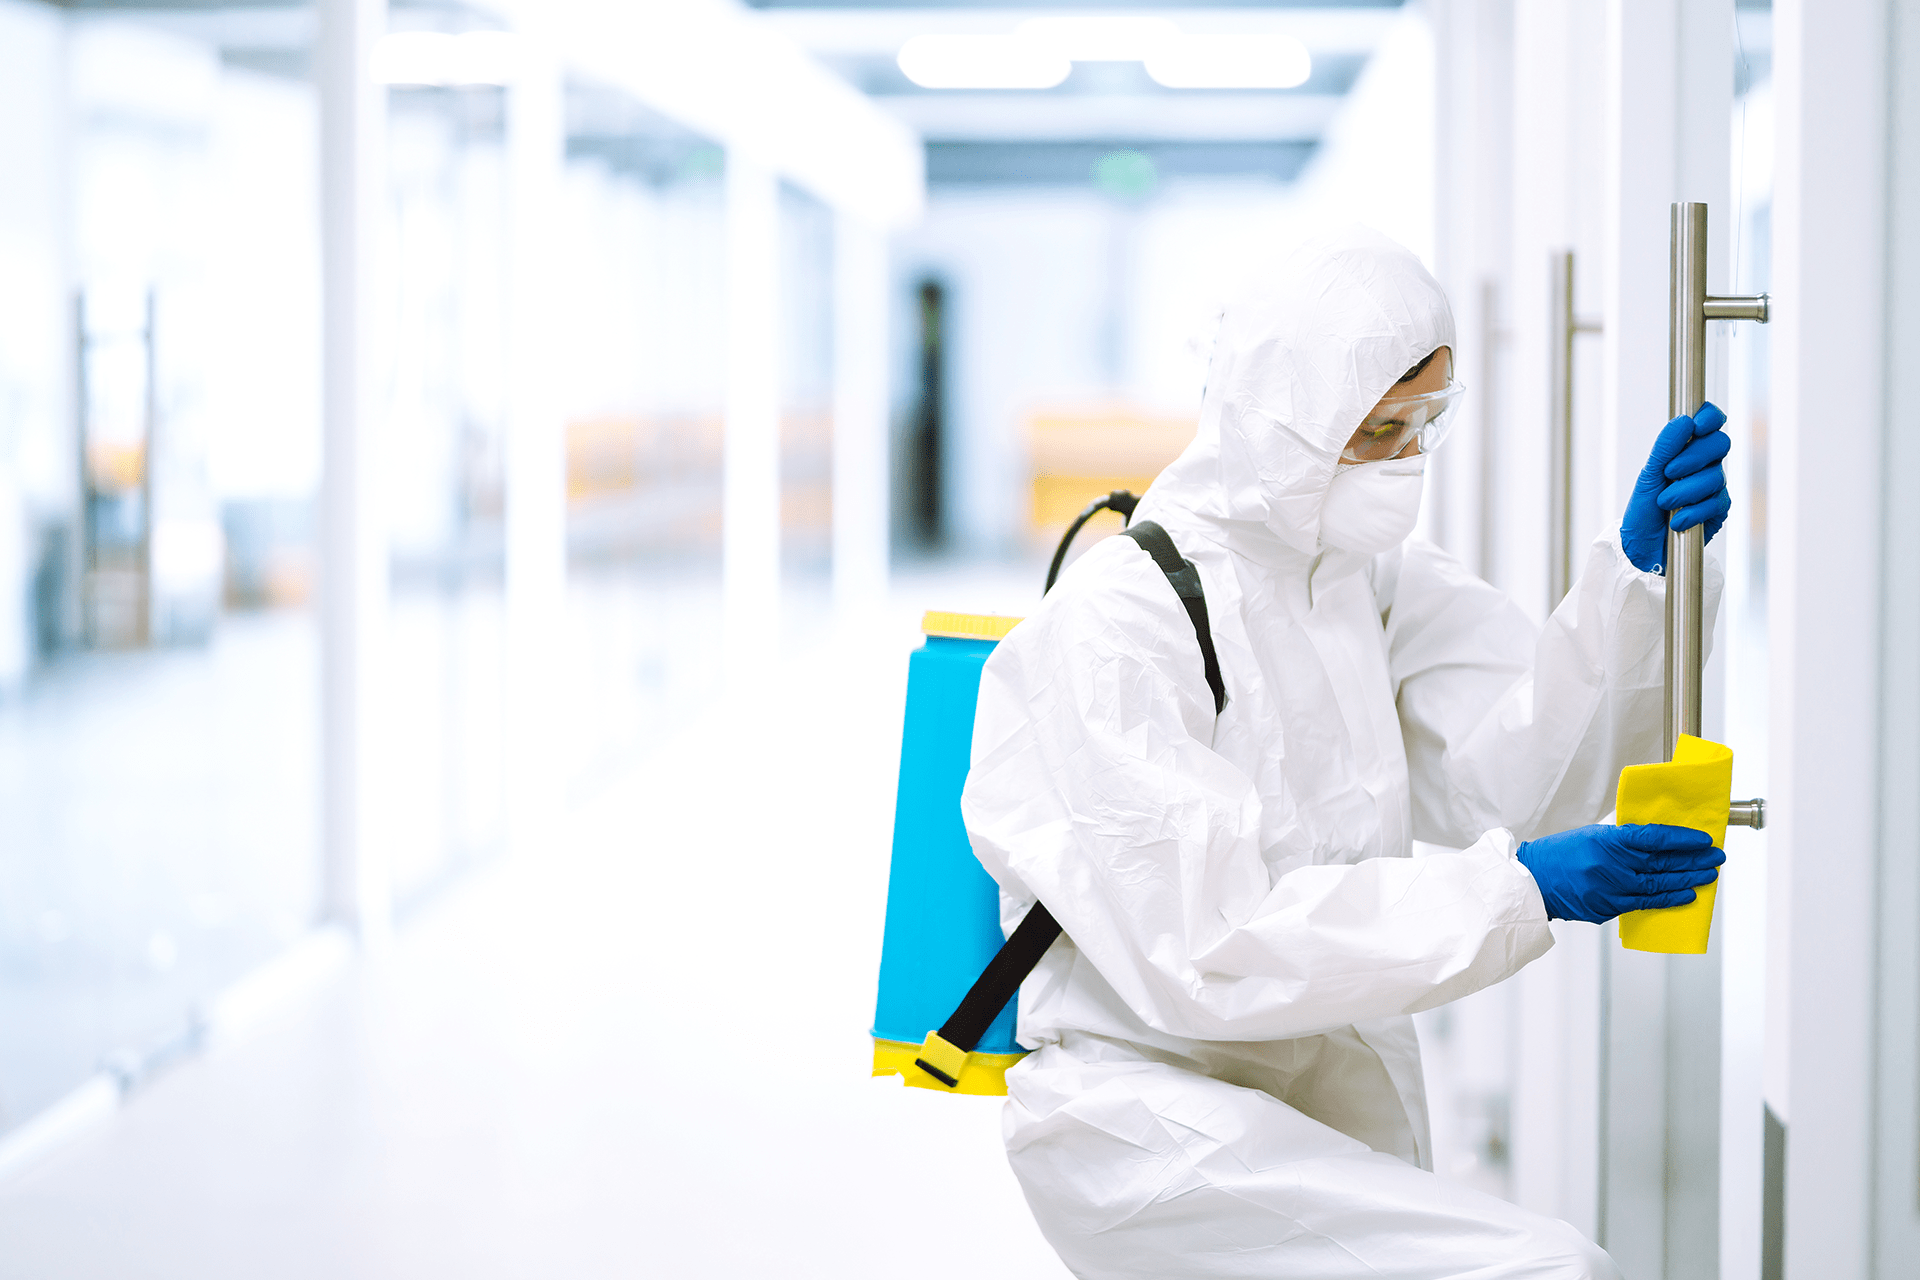 How a Sanitation Products Company Weathered the Pandemic by Leveraging Contify's AI-enabled Market Intelligence Platform to Drive Strategy